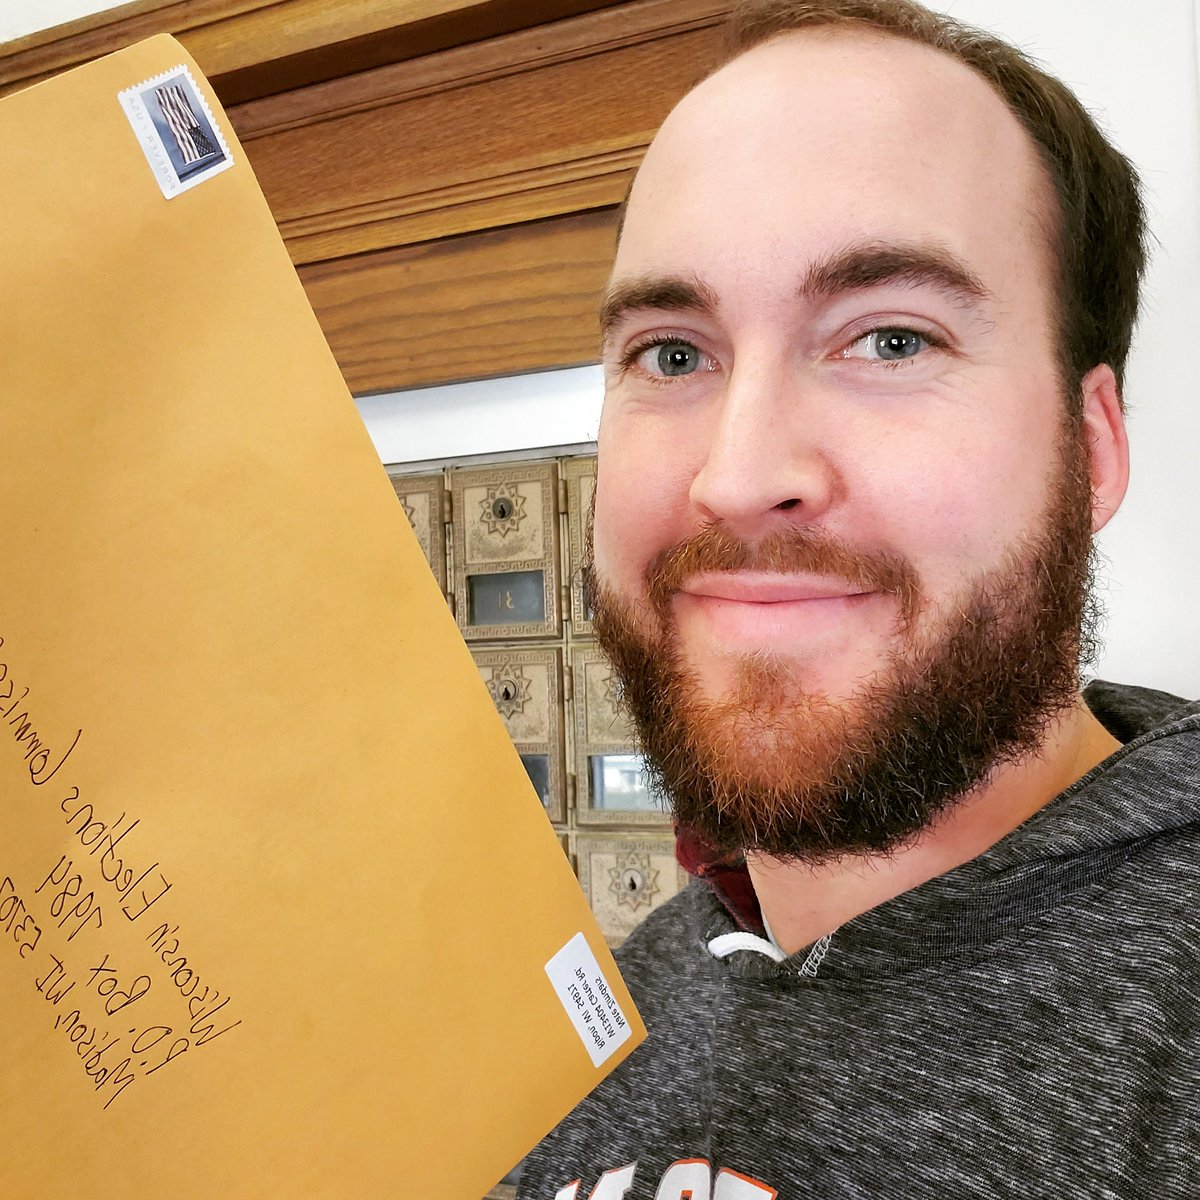 EXCITING NEWS: I am running for State Assembly! I just mailed out my Declaration of Candidacy to make it official. While I am changing races, my motivation for running and the rural priorities my campaign champions have only grown more relevant. -NZ #stateassembly  #Election2020